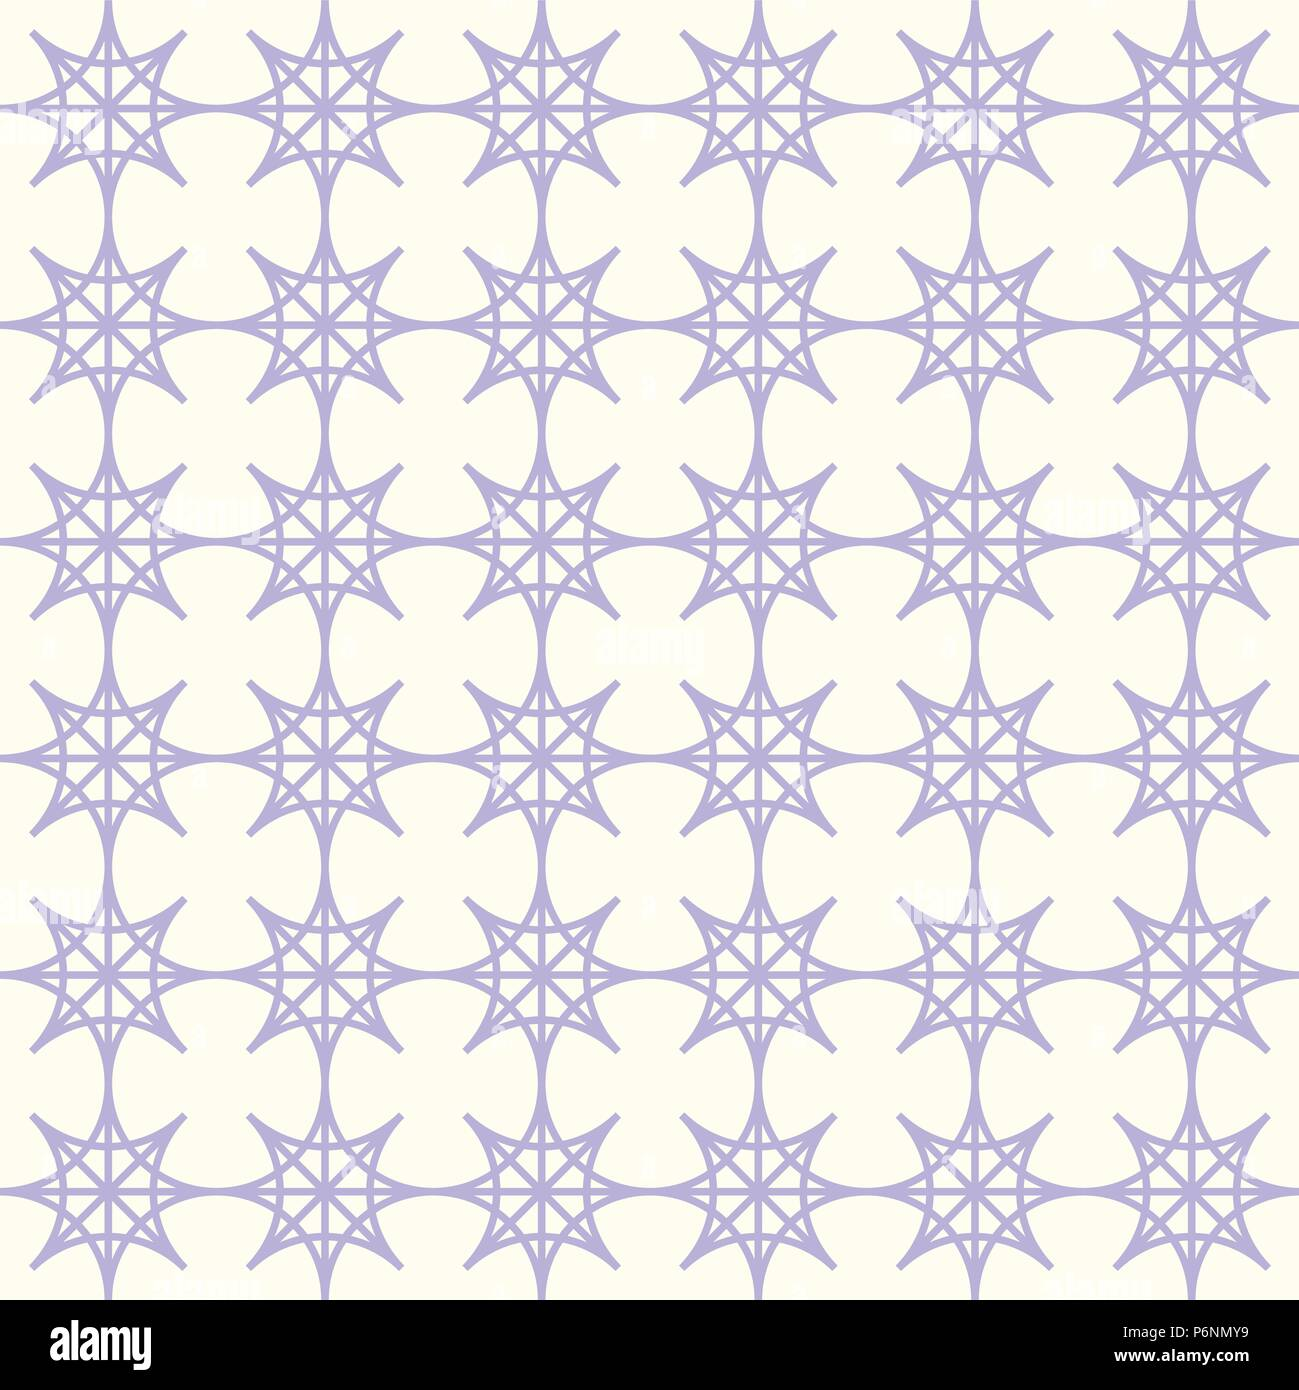 Purple four angle star seamless pattern on pastel background. Abstract star pattern in modern and vintage style for design. - Stock Vector